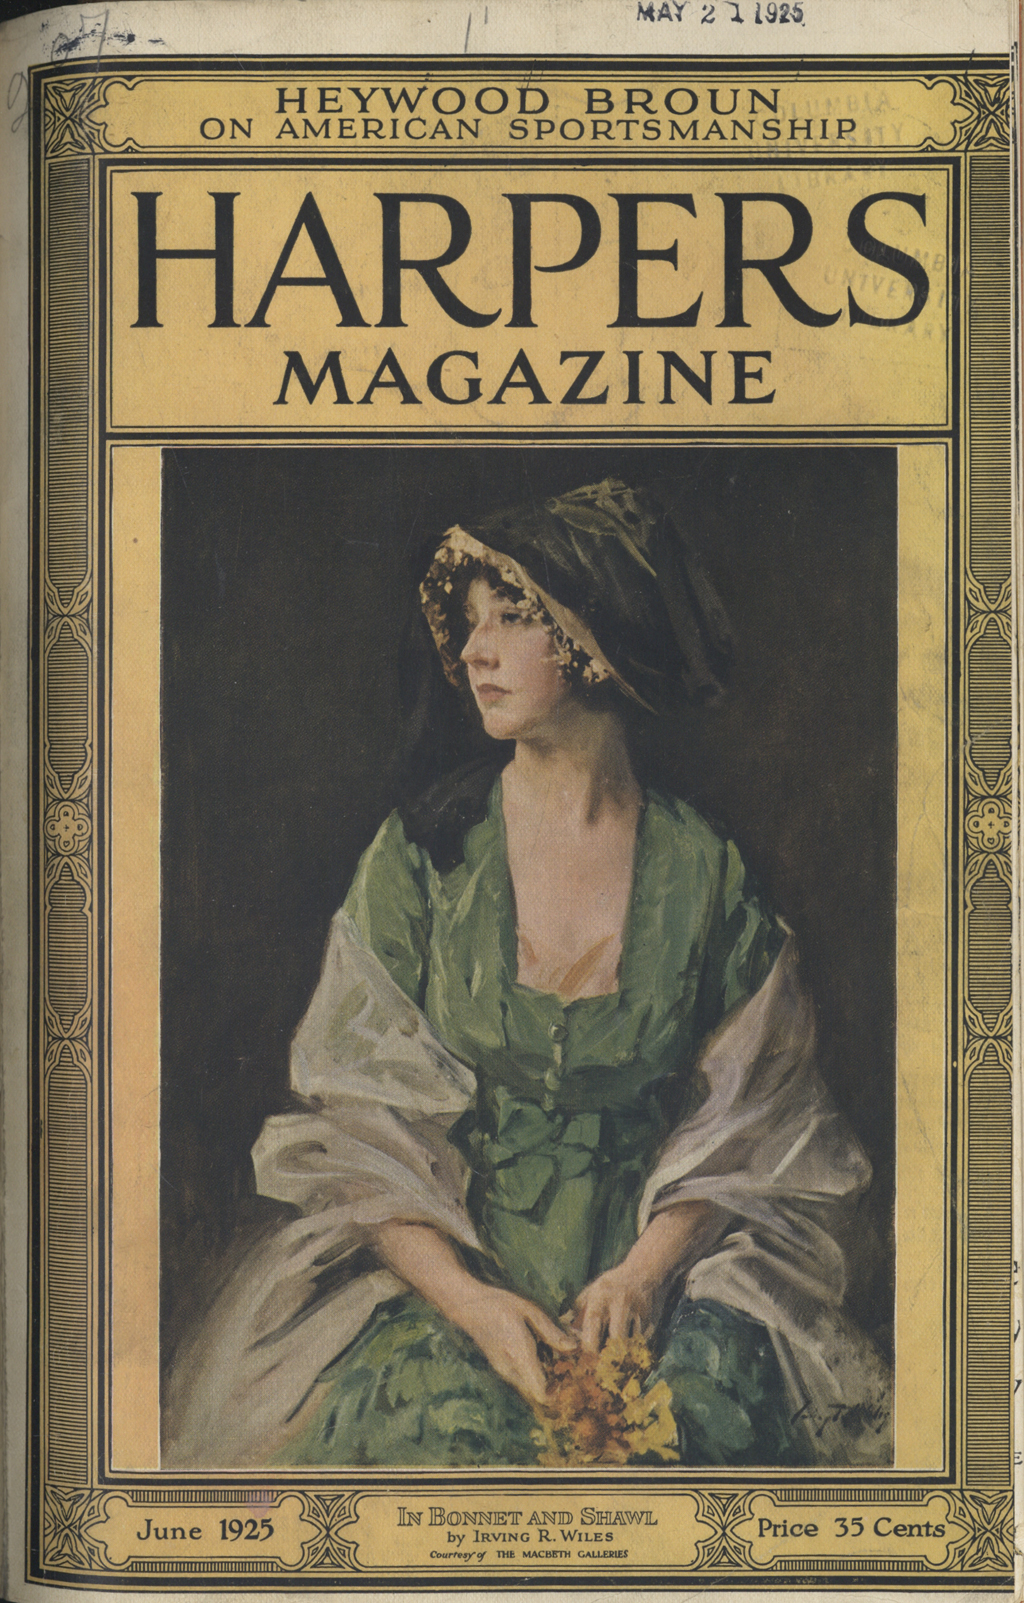 Cover of the June 1925 issue of Harpers Magazine.